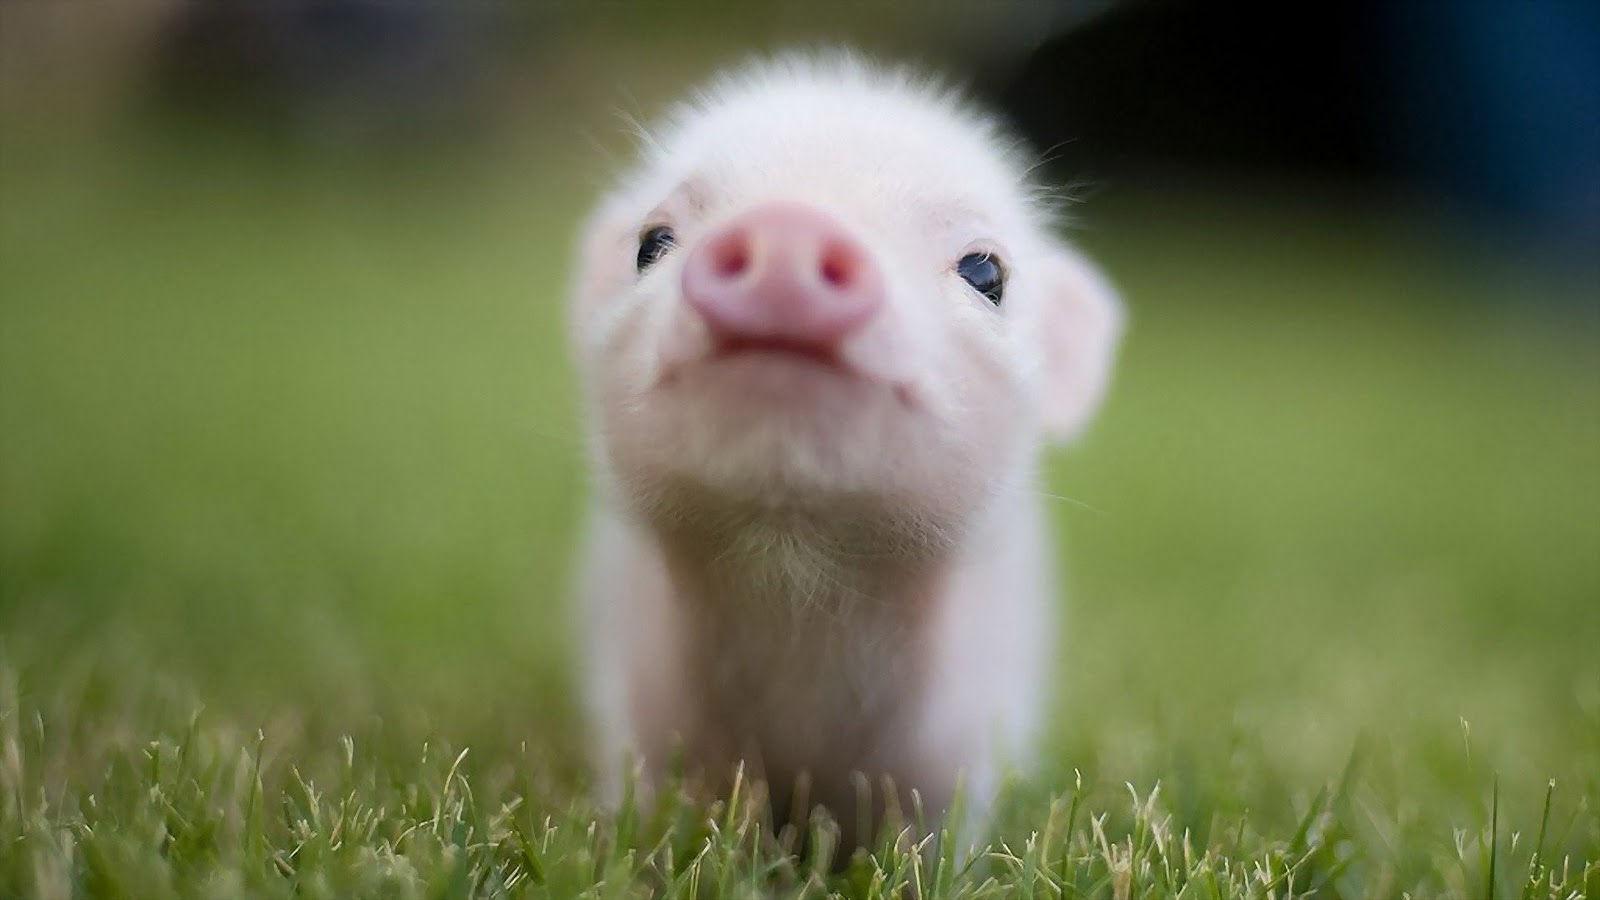 Cute Baby Pigs 11278 Hd Wallpapers in Animals   Imagescicom 1600x900